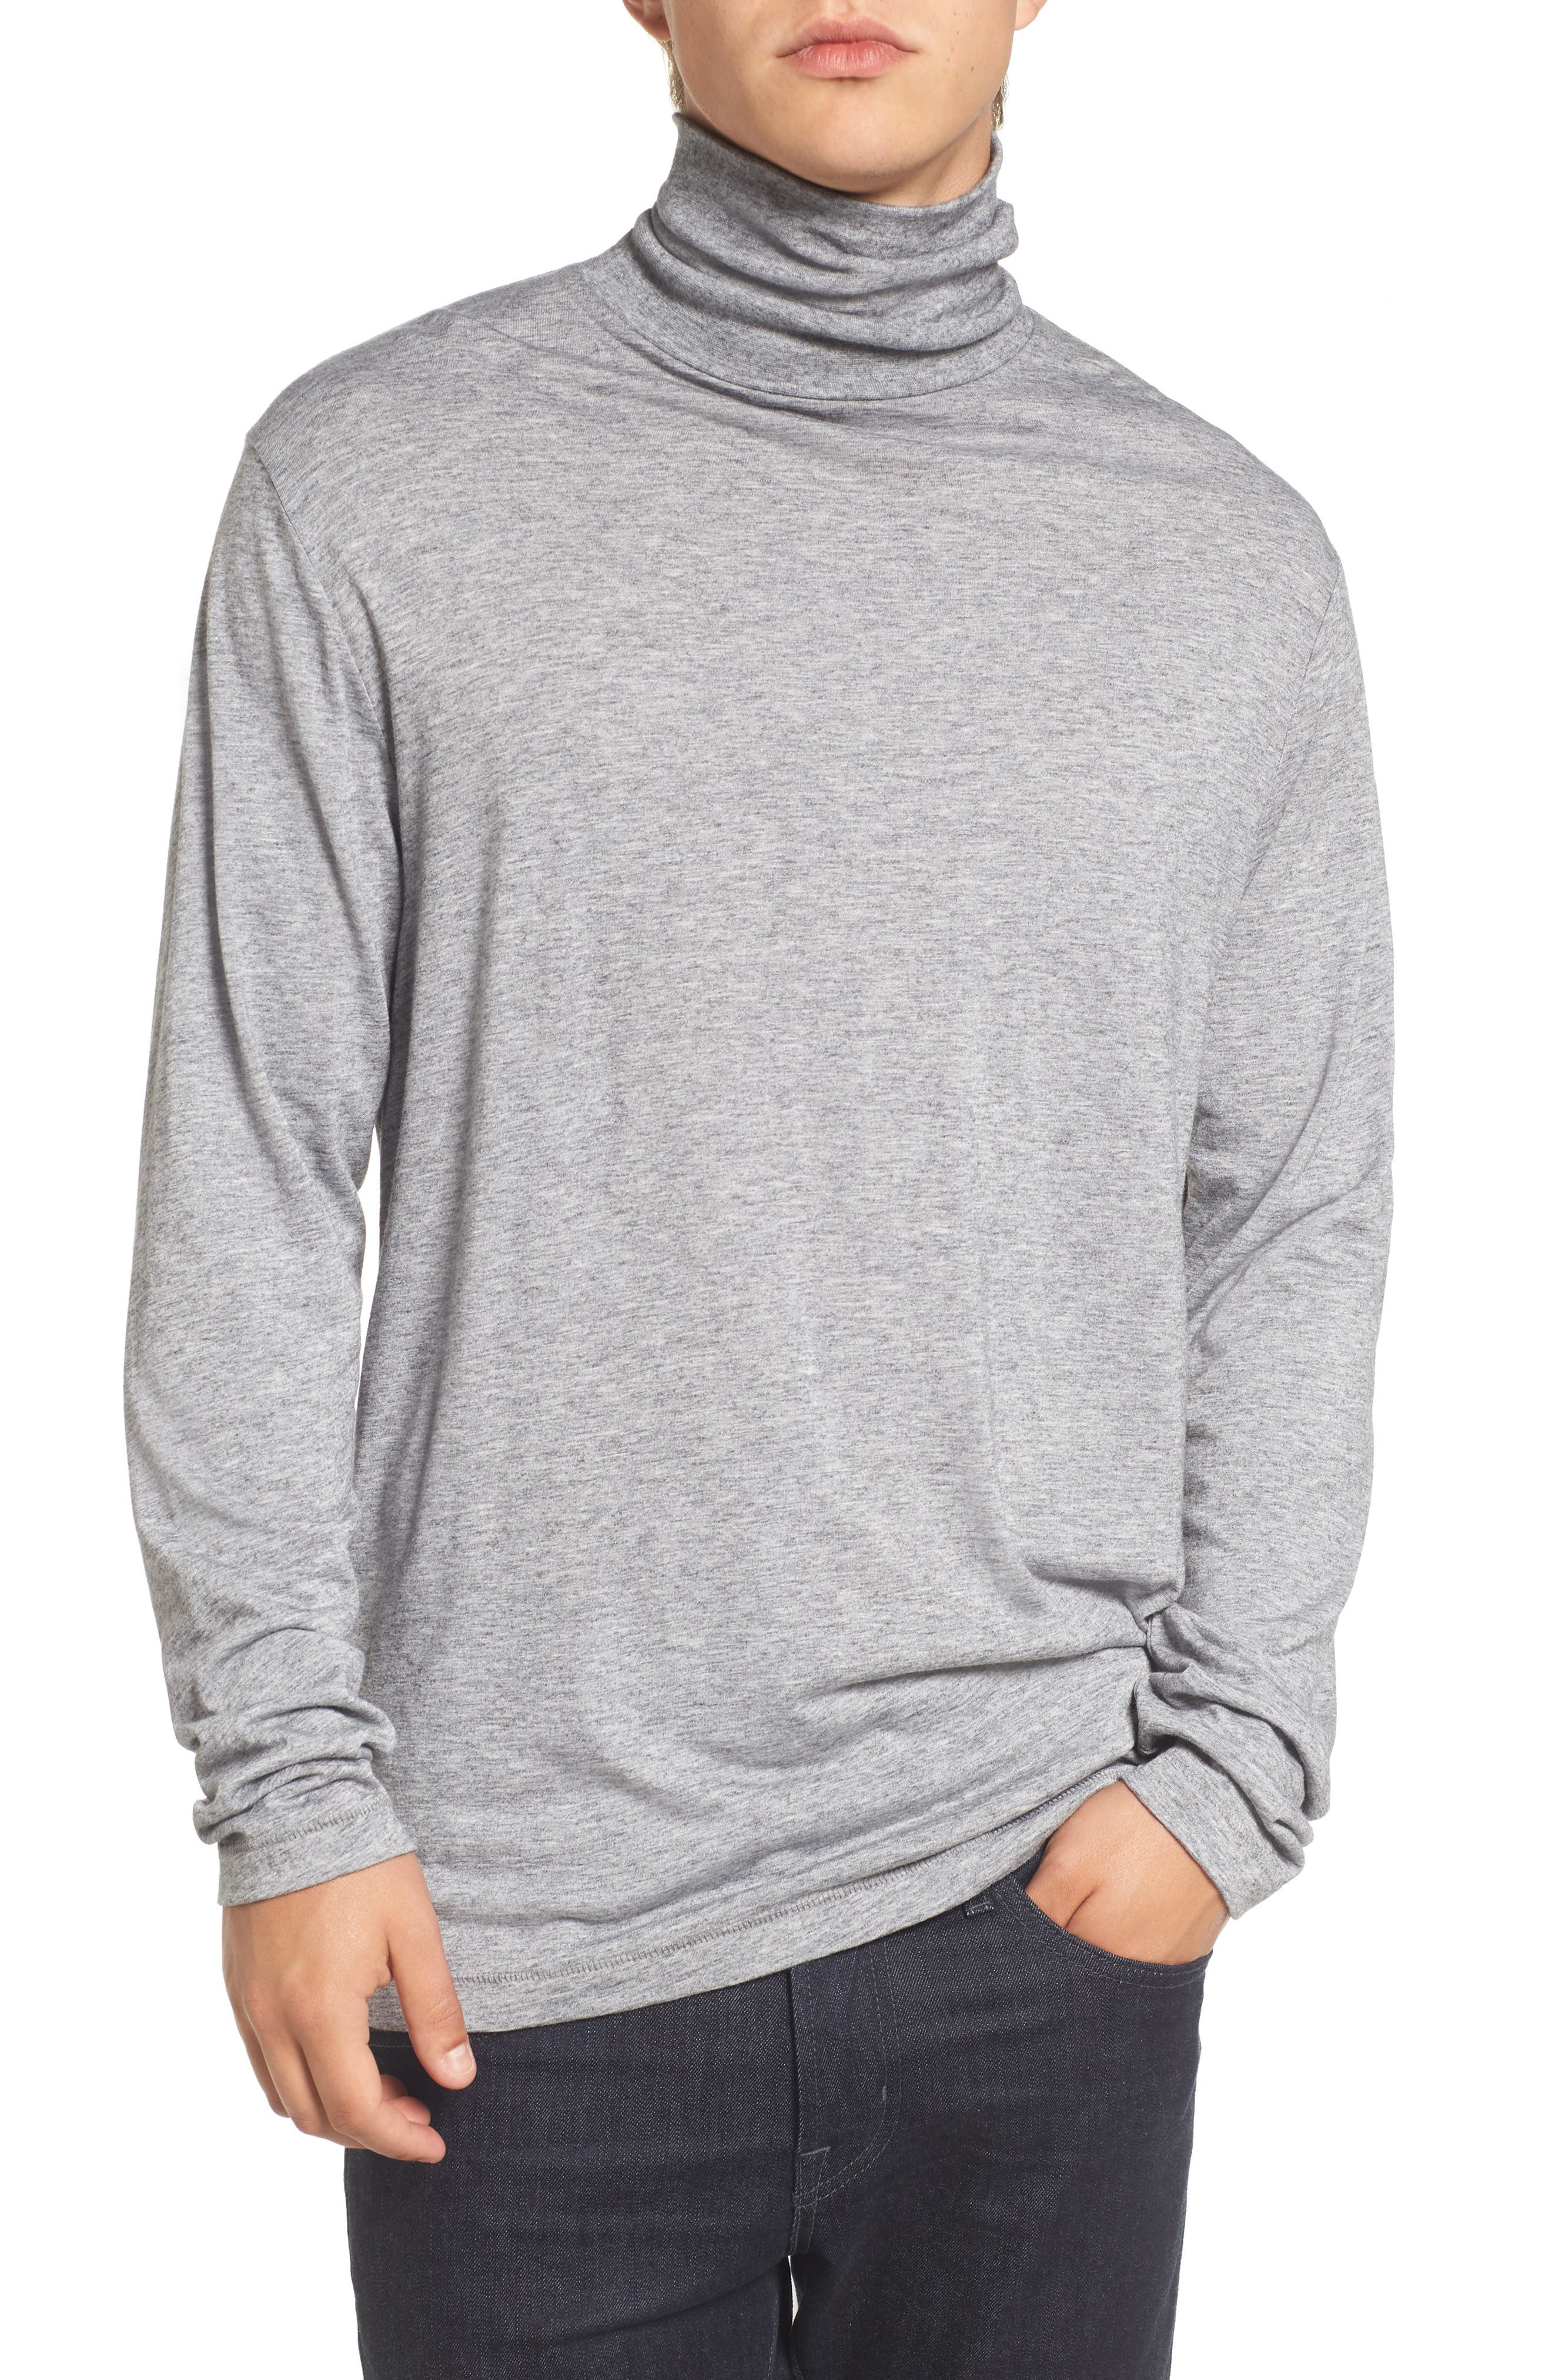 Alternate Image 1 Selected - French Connection Lightweight Turtleneck Sweater